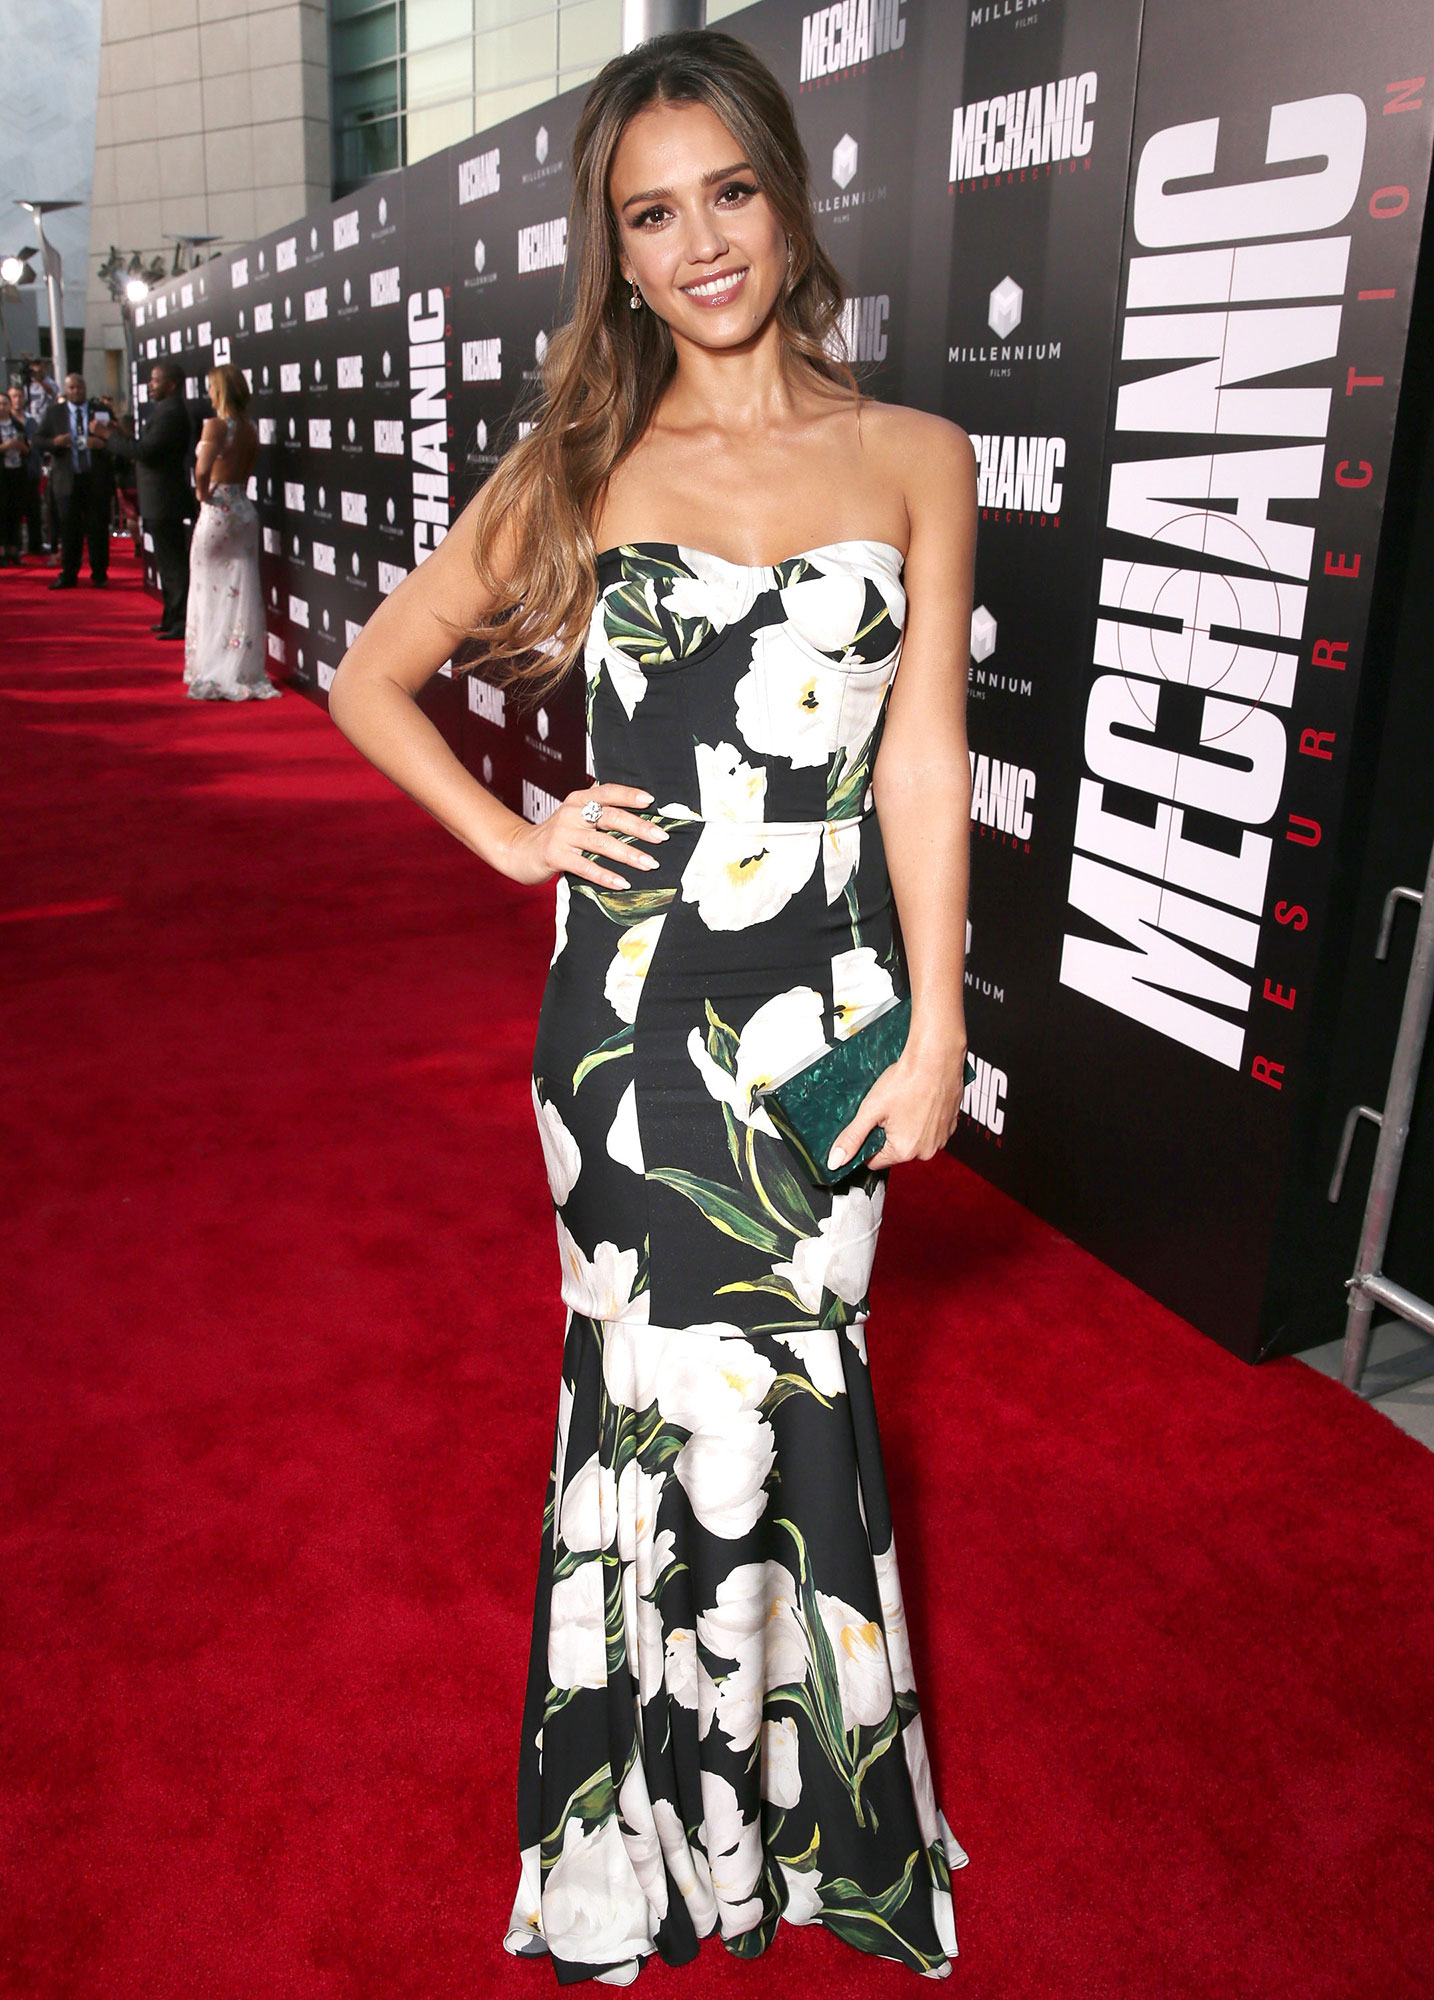 a08417ca4e12 Jessica Alba worked the carpet at the premiere of  Mechanic  Resurrection   in a strapless Dolce   Gabbana floral dress. Todd Williamson Getty Images